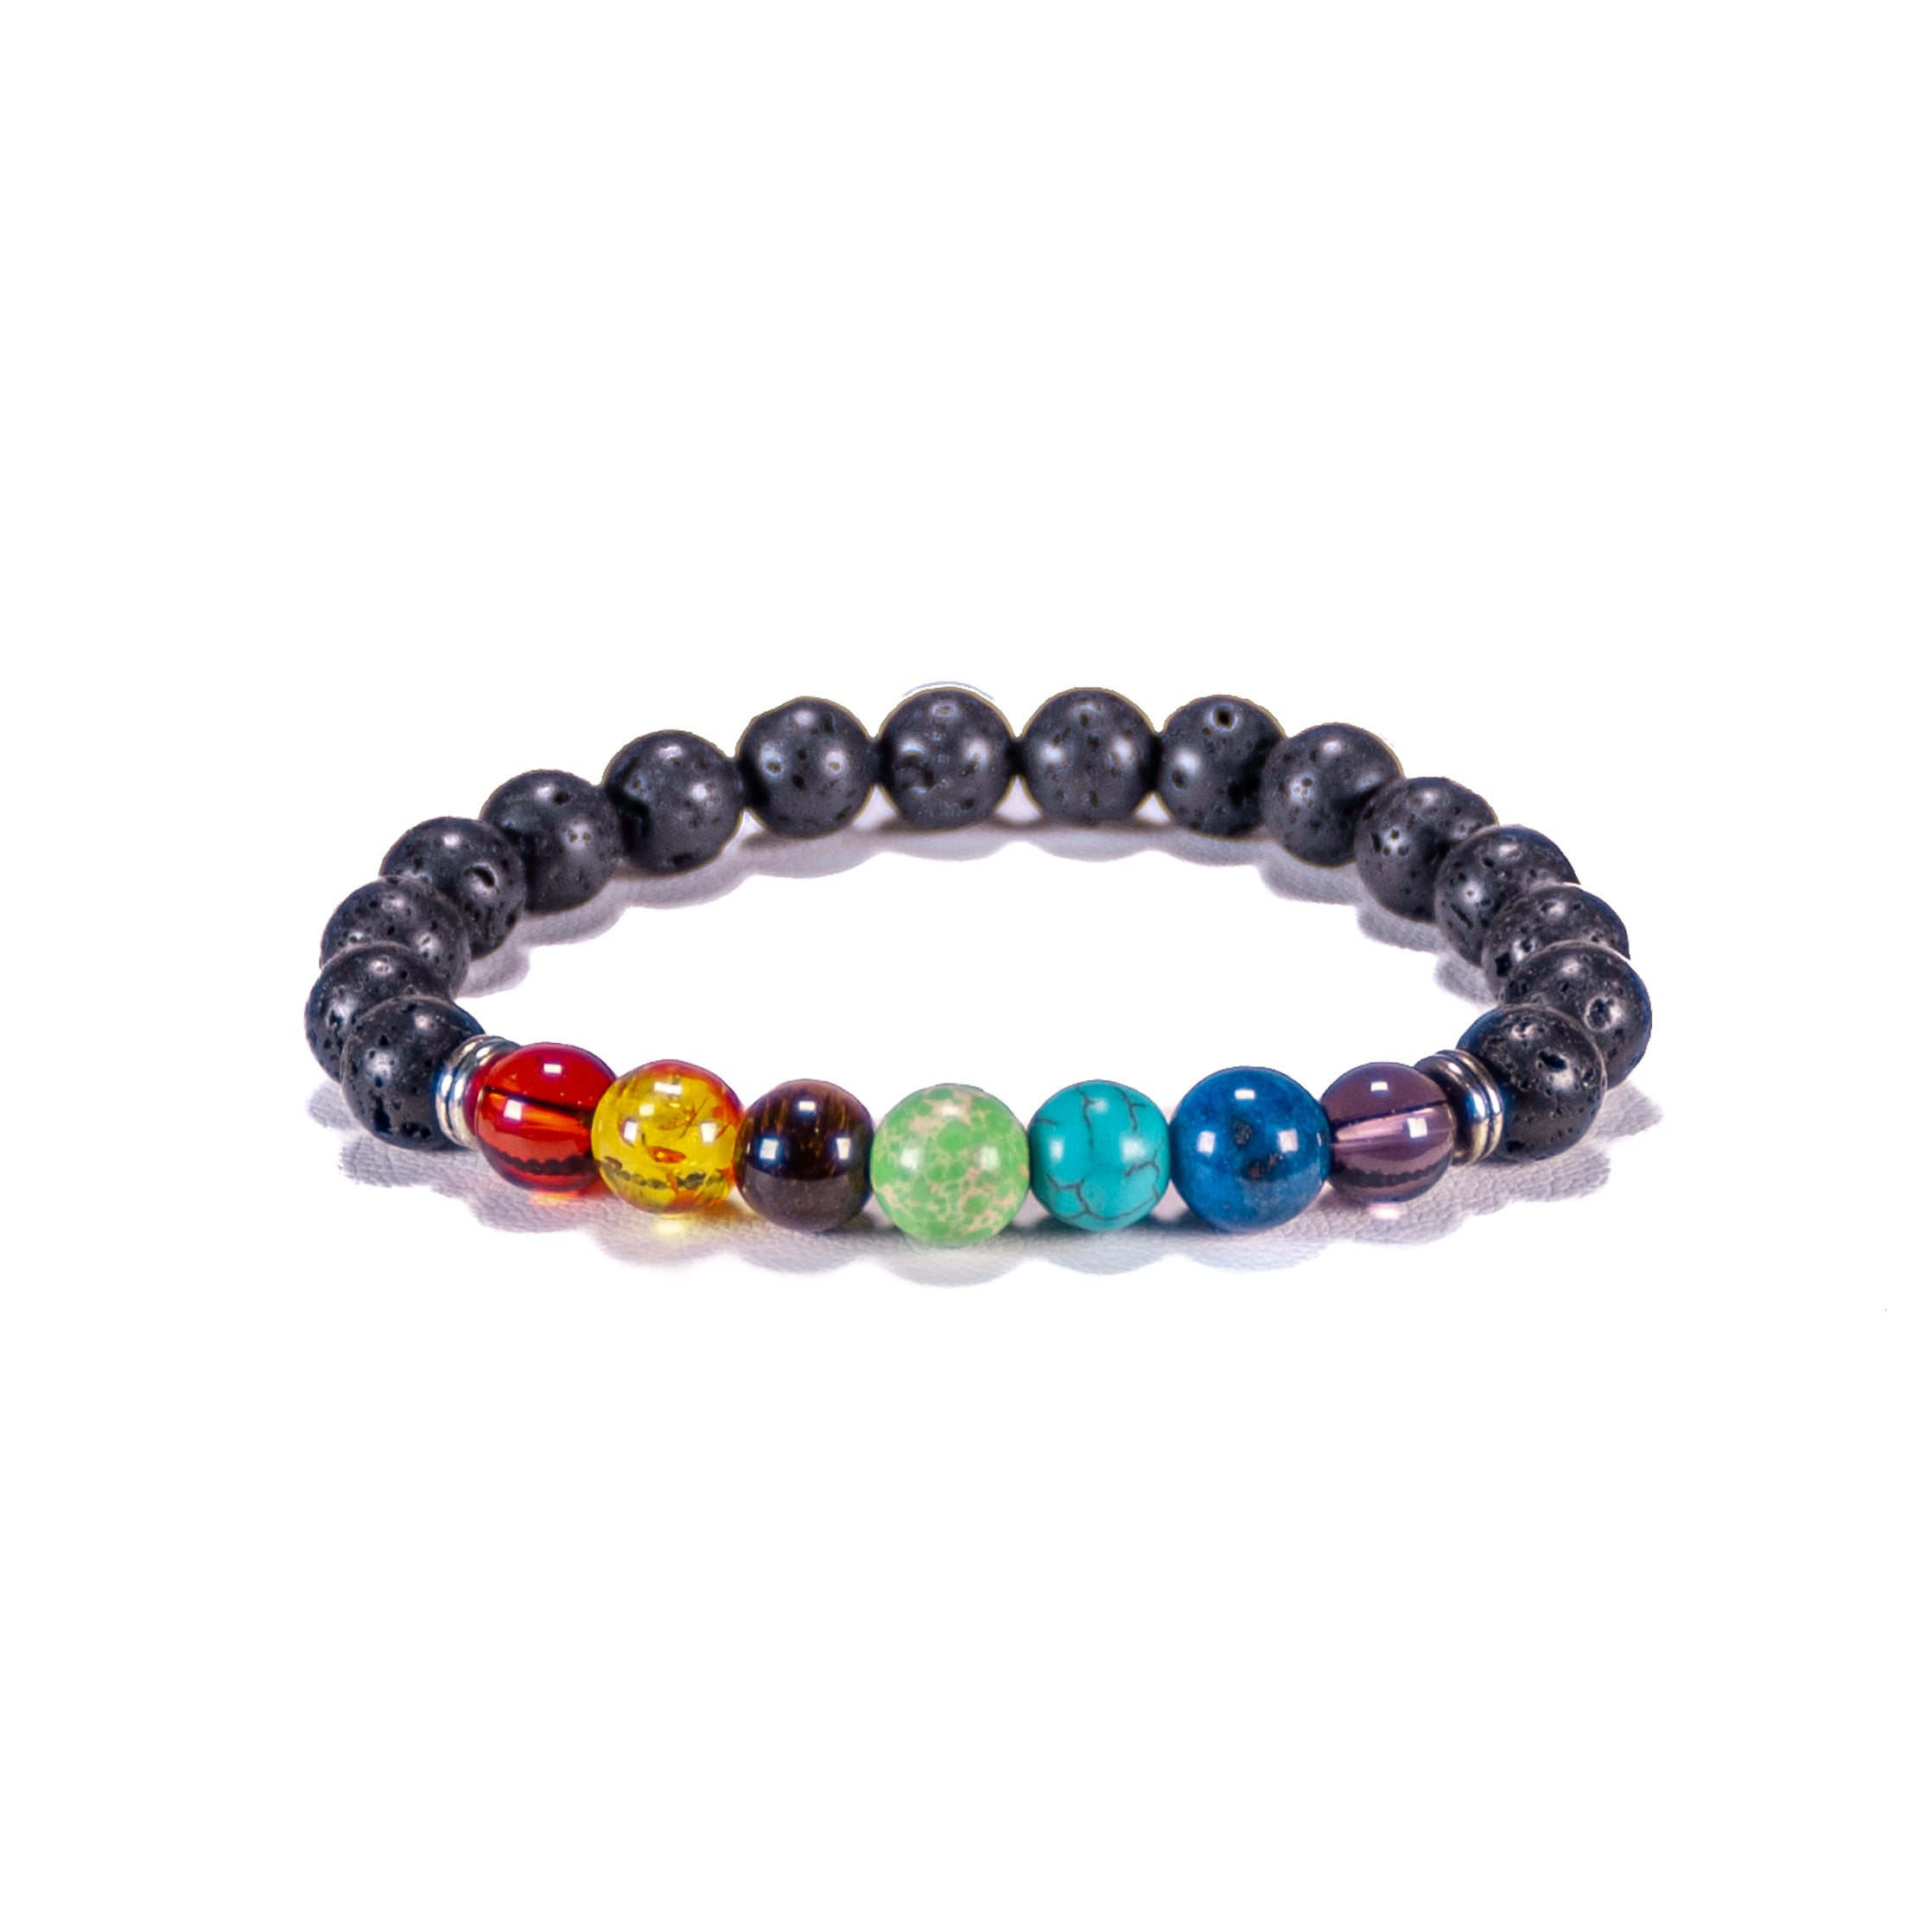 Chakra Gemstone Beads on Lava Rock Beads Bracelet